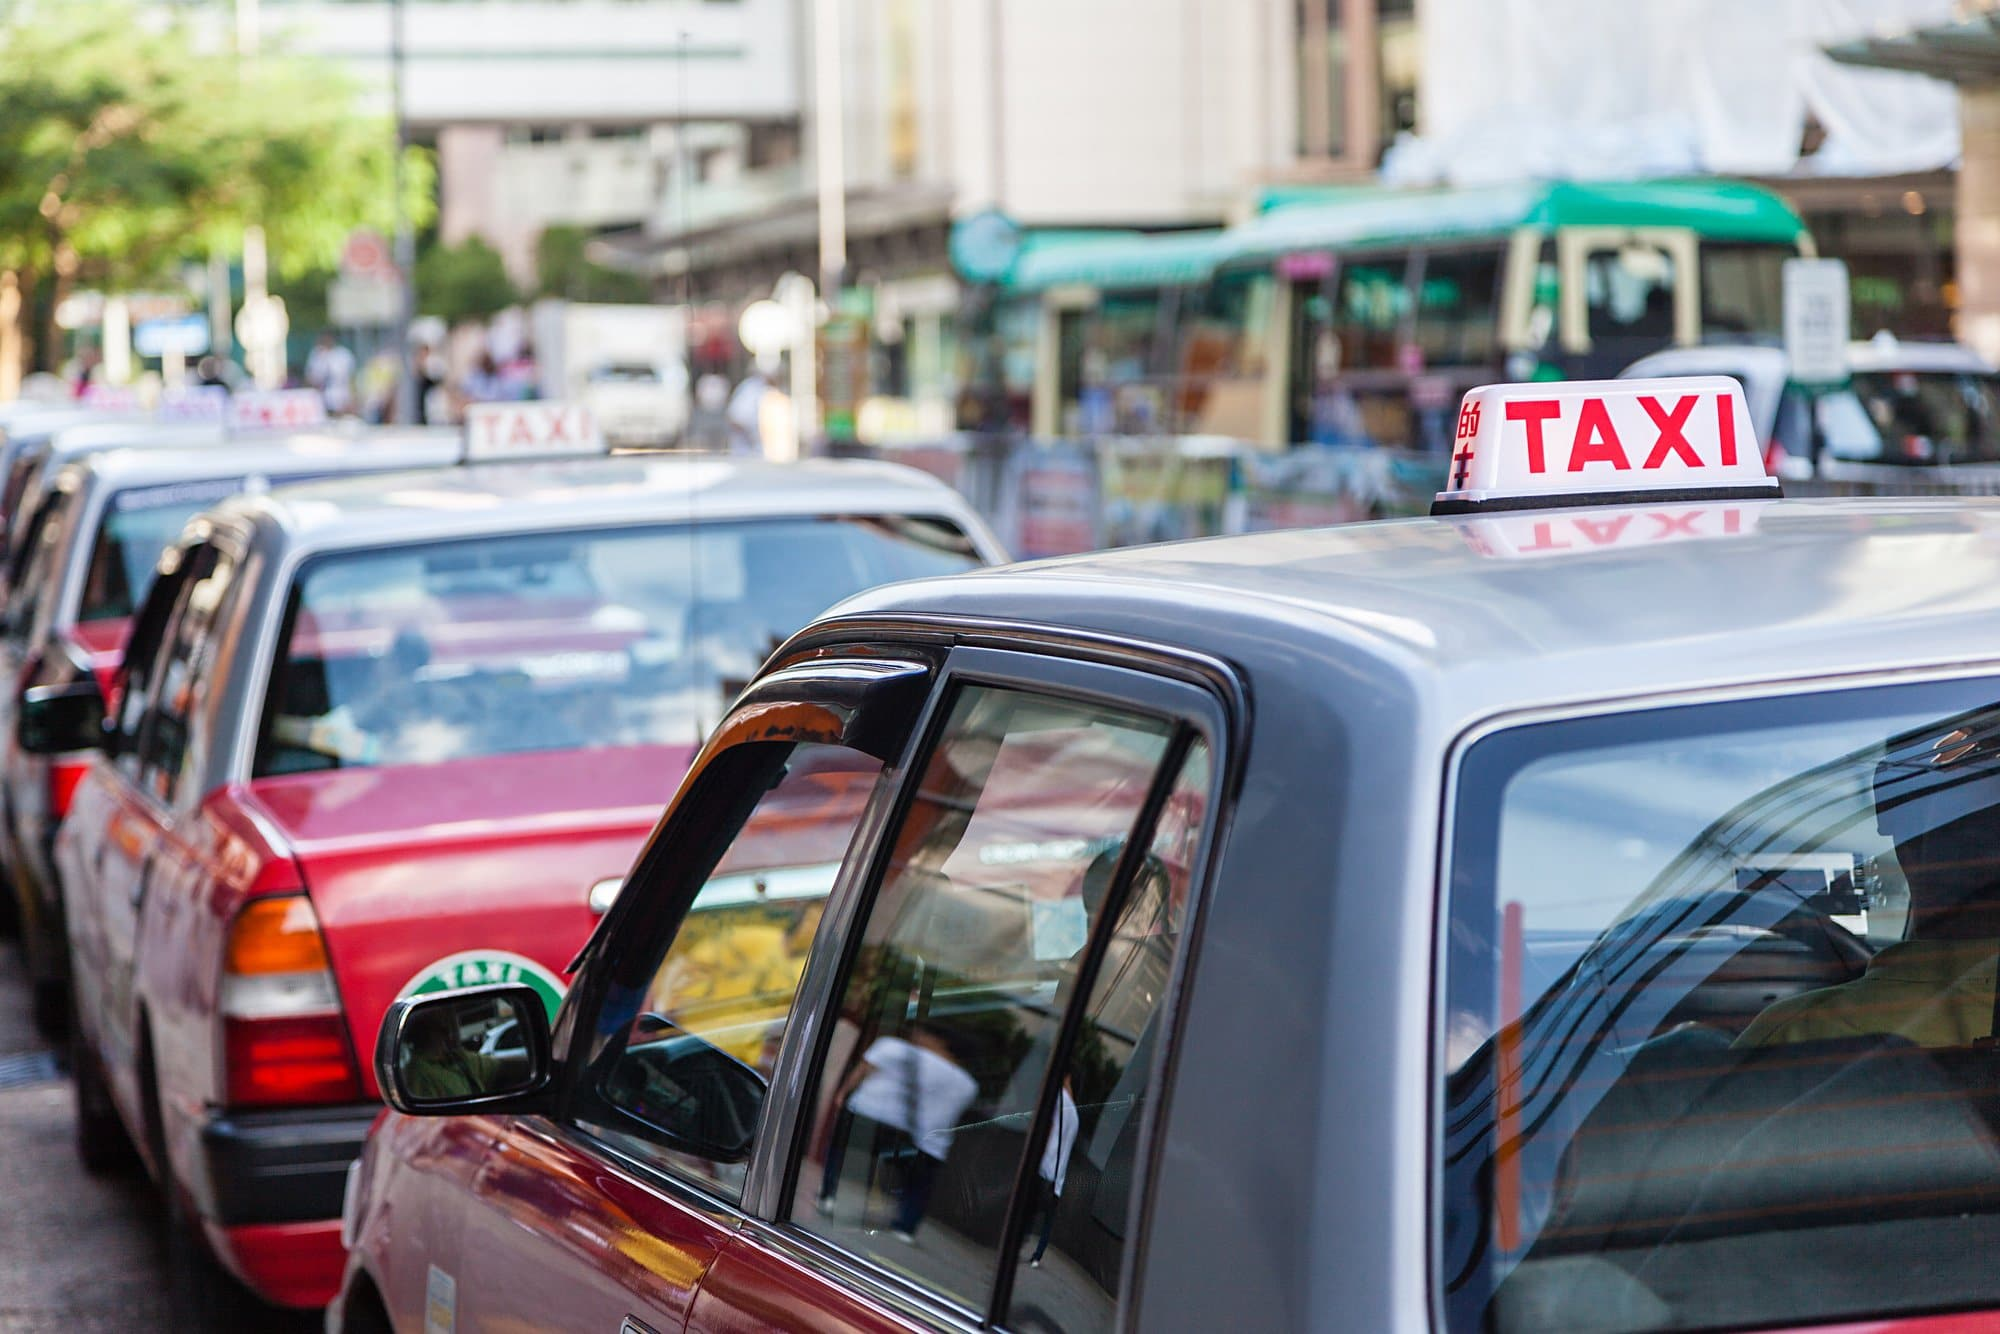 Take a taxi to your hotel from Hong Kong airport